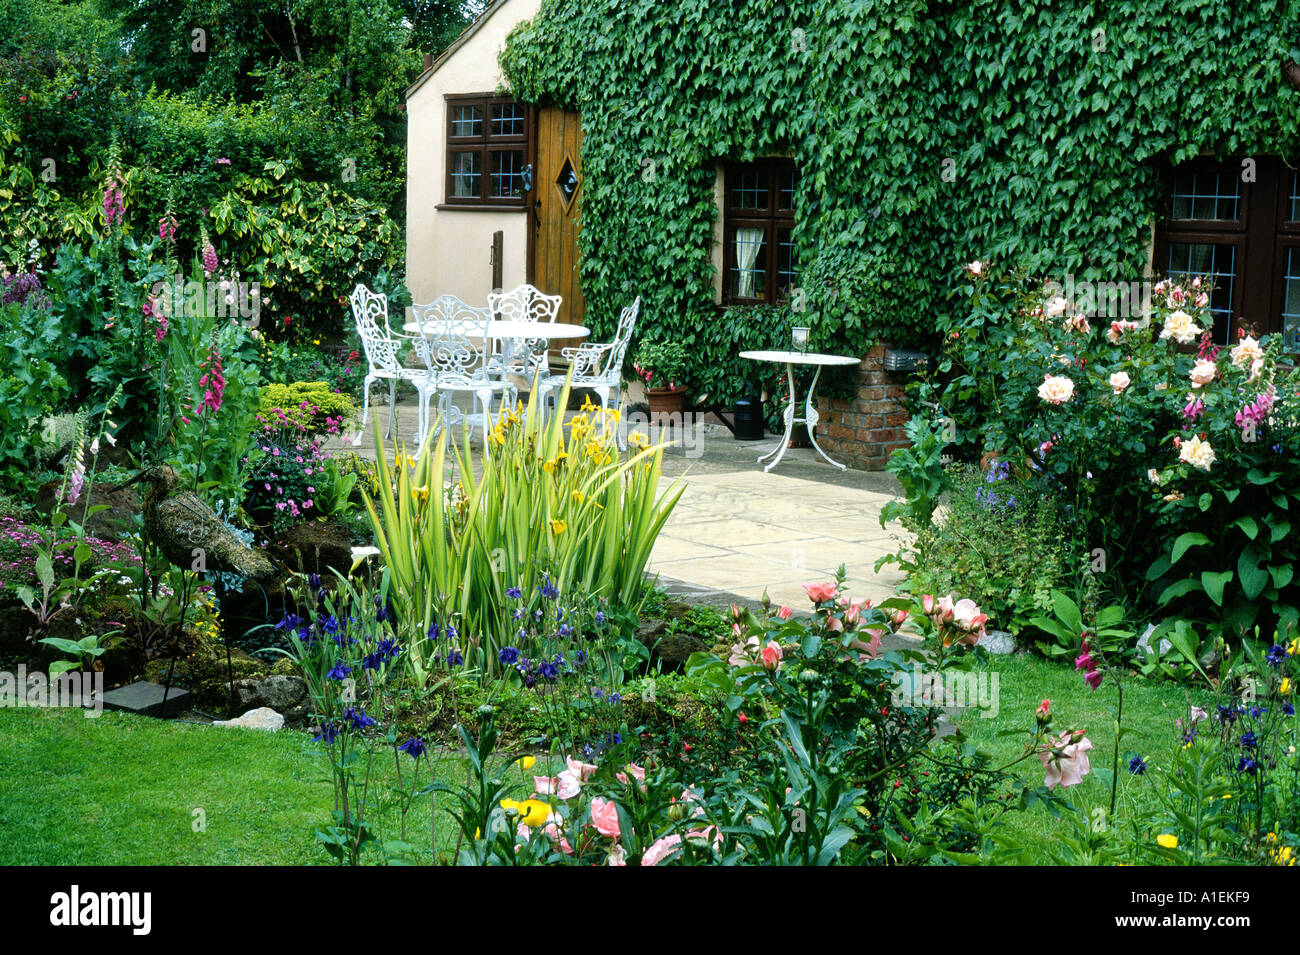 pond patio house and small garden plants flowers table chairs stock photo royalty free image. Black Bedroom Furniture Sets. Home Design Ideas